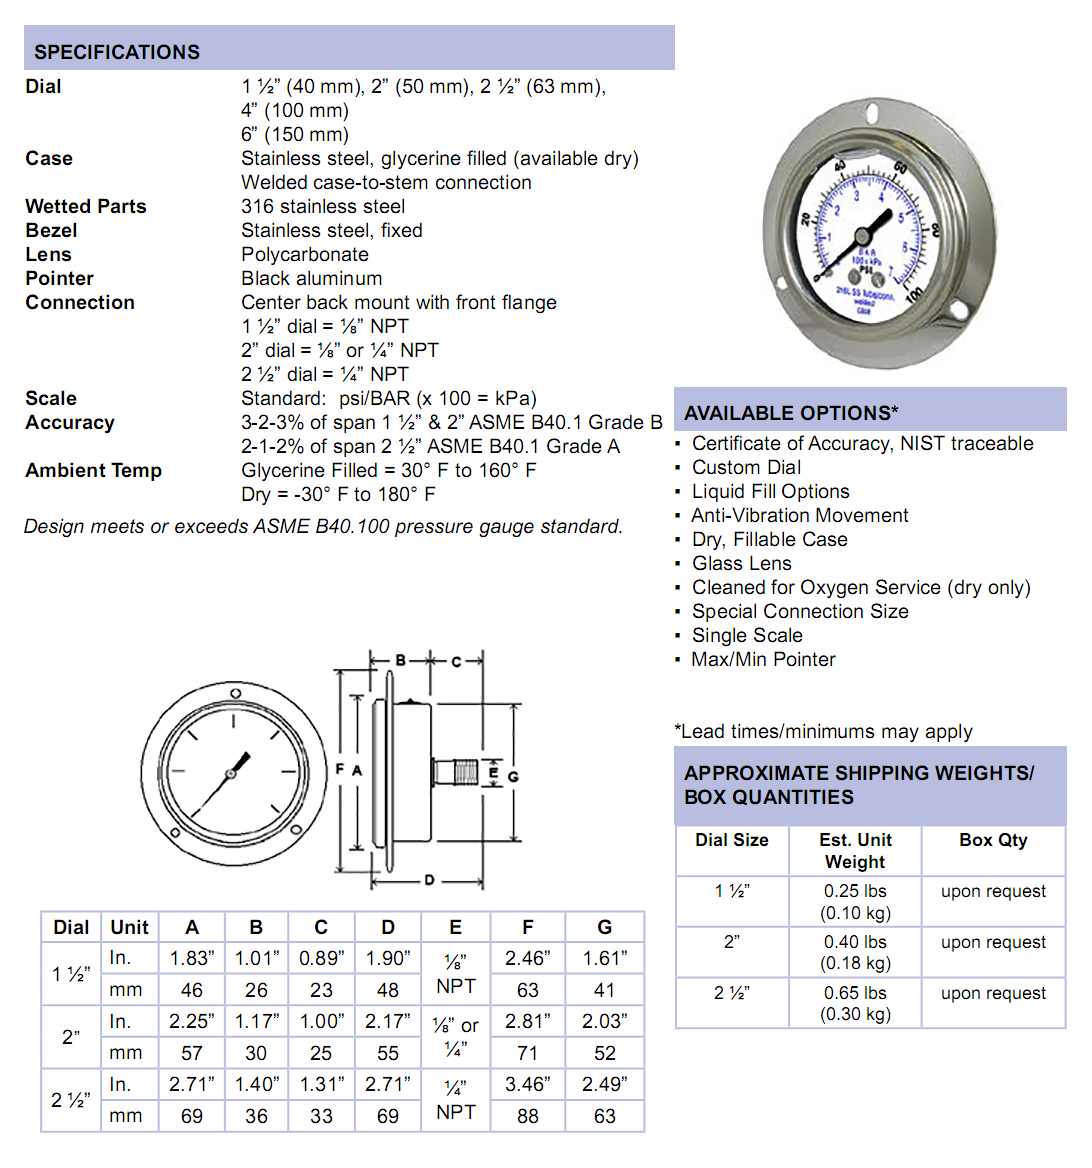 304lfw-all-stainless-front-flange-panel-mount-specifications